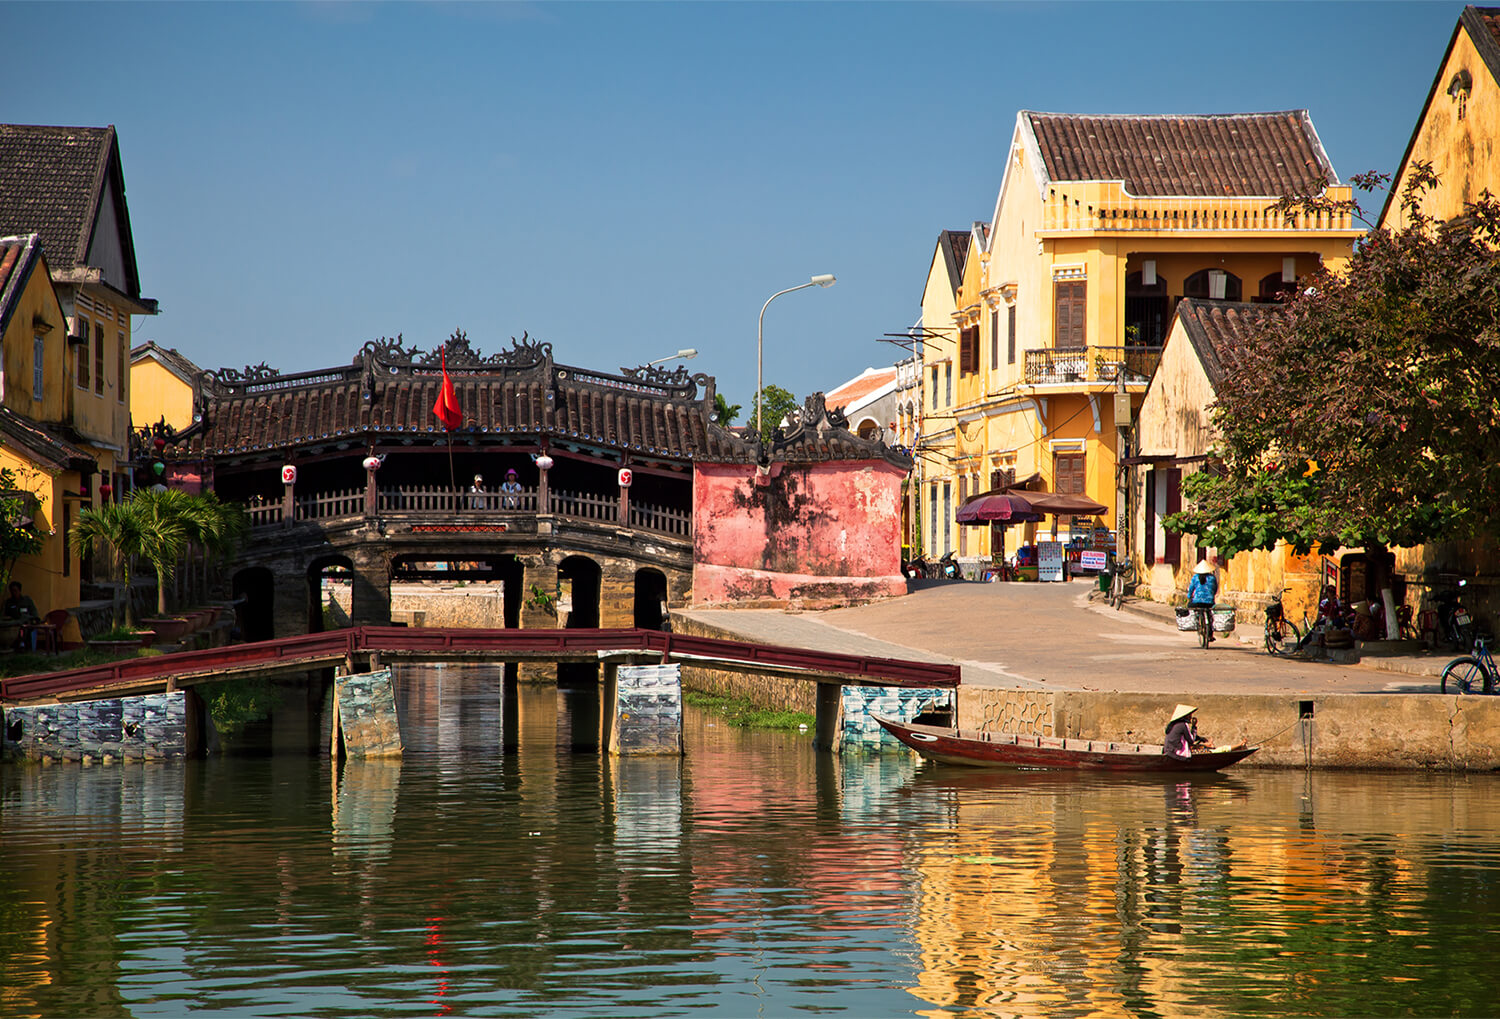 The Japanese Covered Bridge - The Legacy Of Ancient Japan In Hoi An